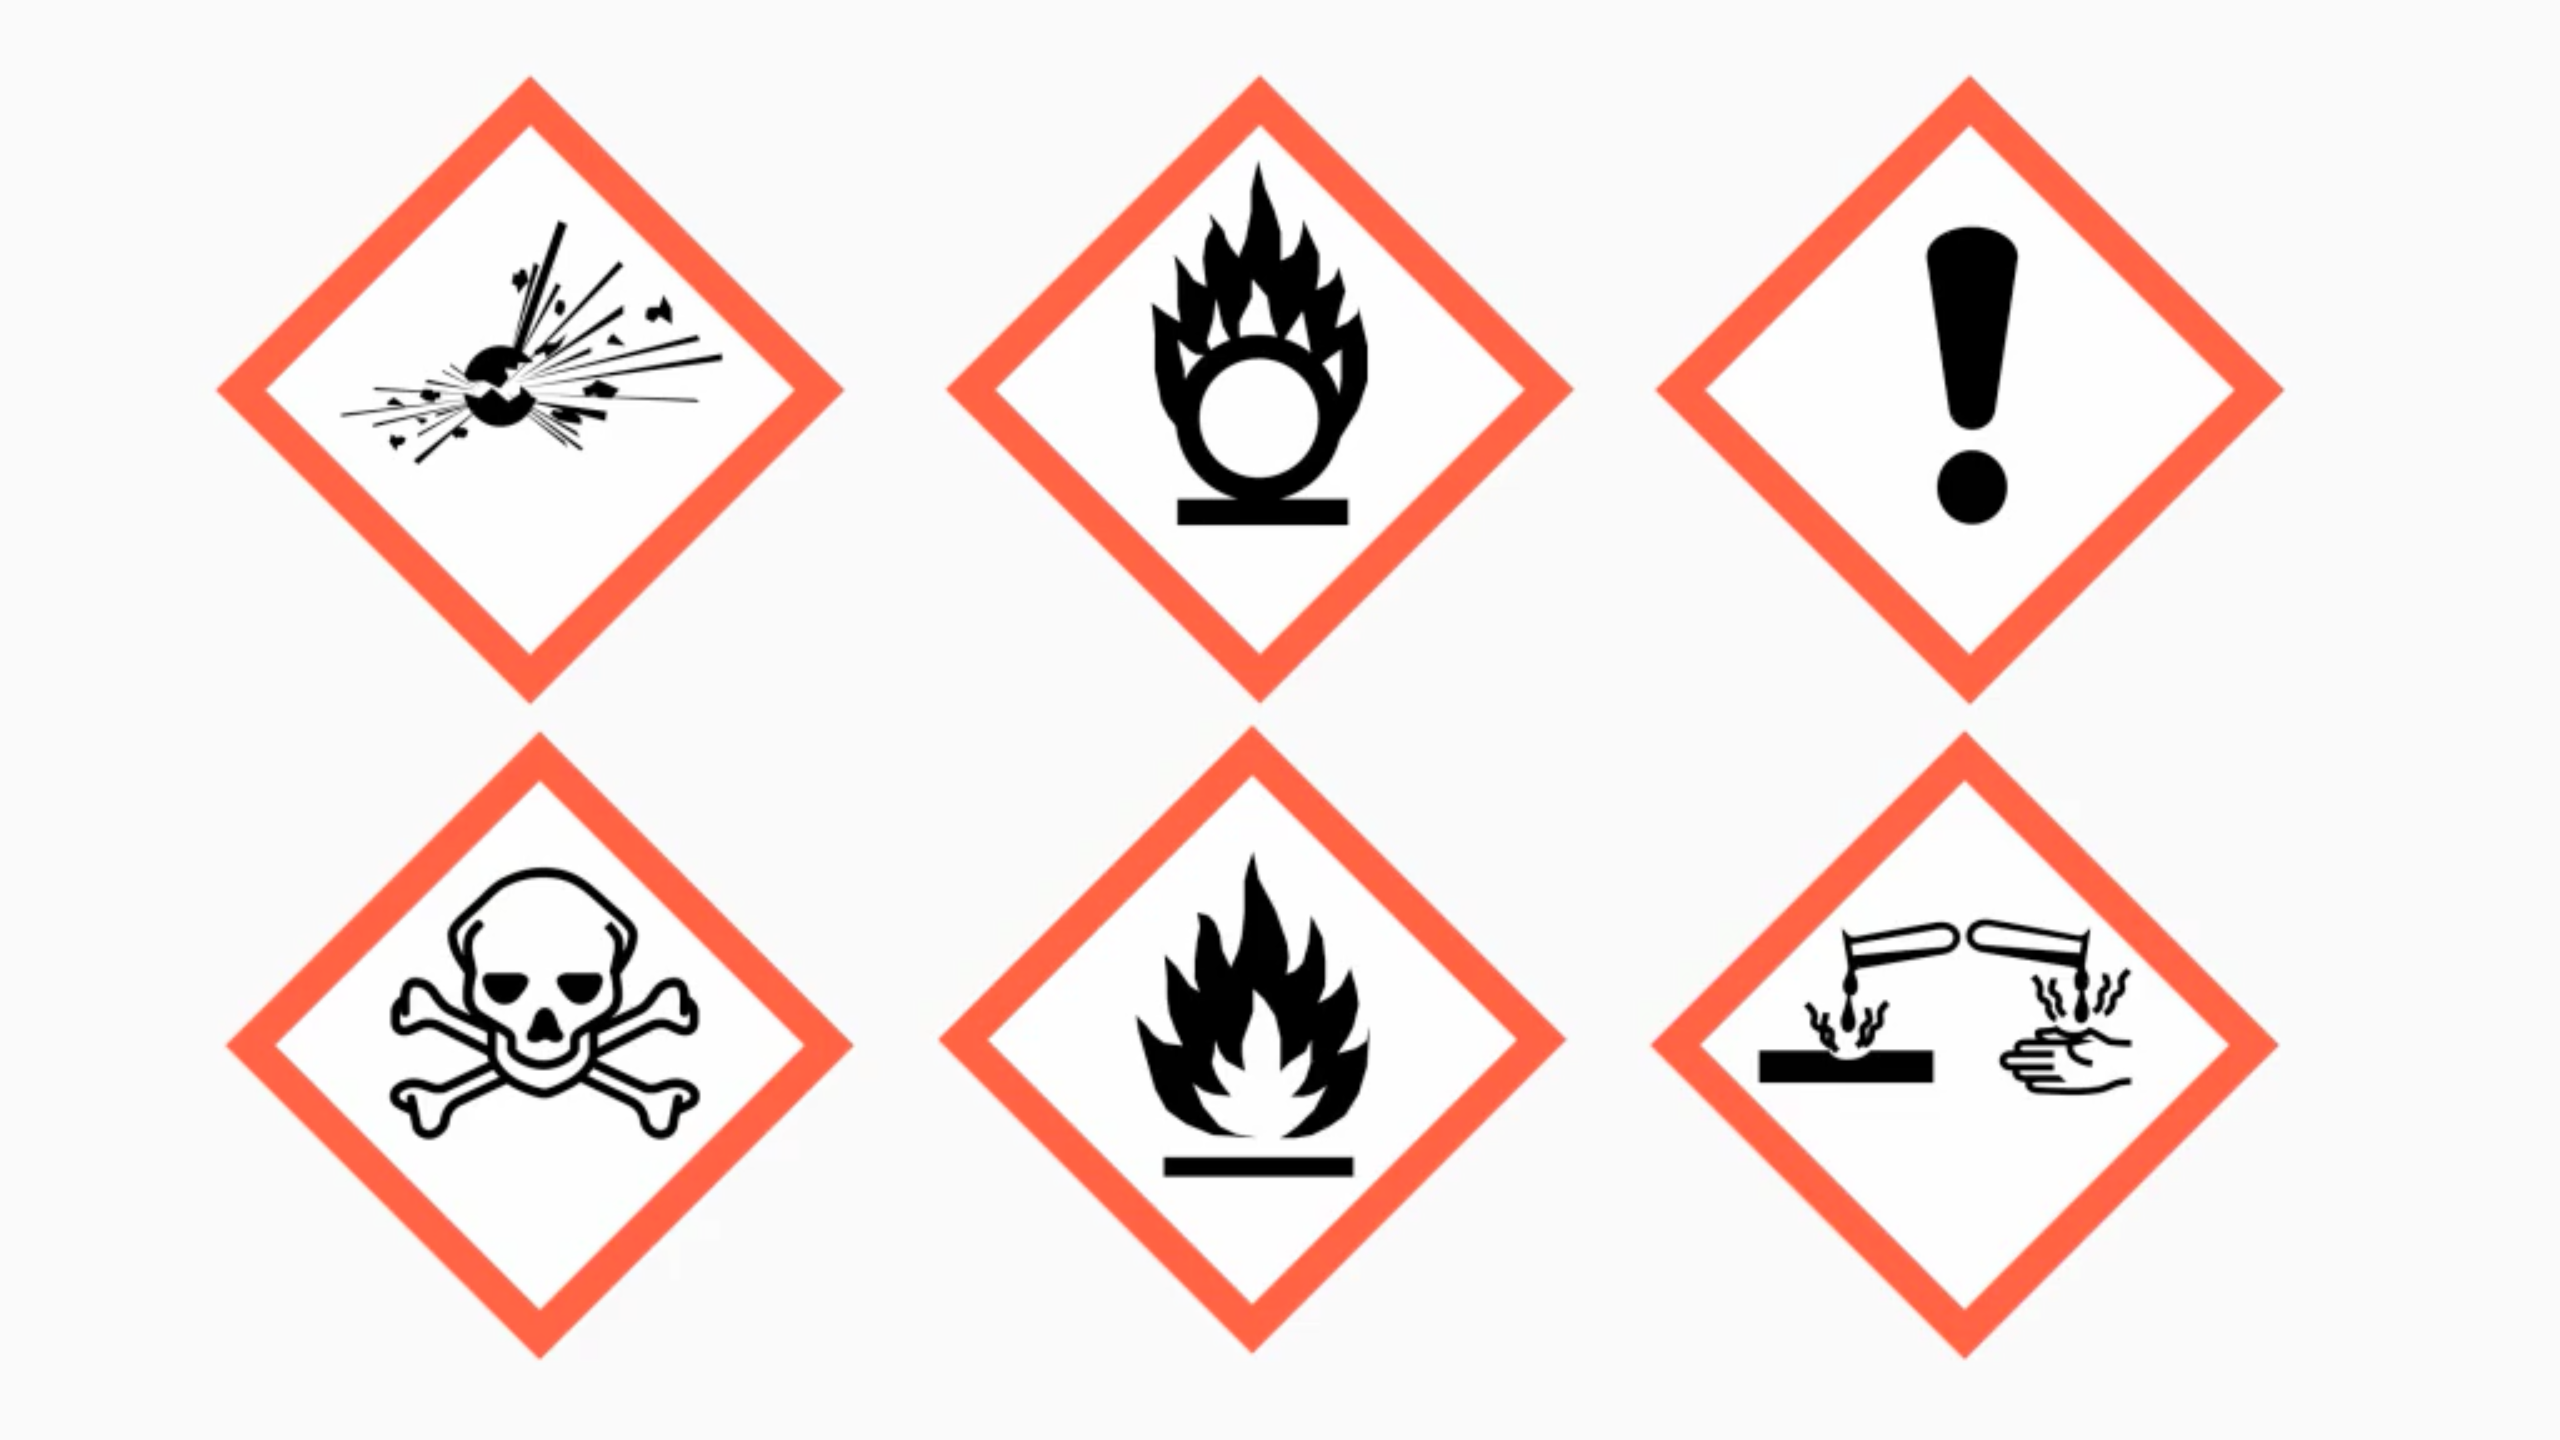 hazard symbols Find out how to type ☣ ☢ ☠ ☡ hazard signs directly from your keyboard you can put them in facebook, youtube, or myspace more than alt codes - various ways to type hazard symbols on windows, mac, linux, or to input into html.